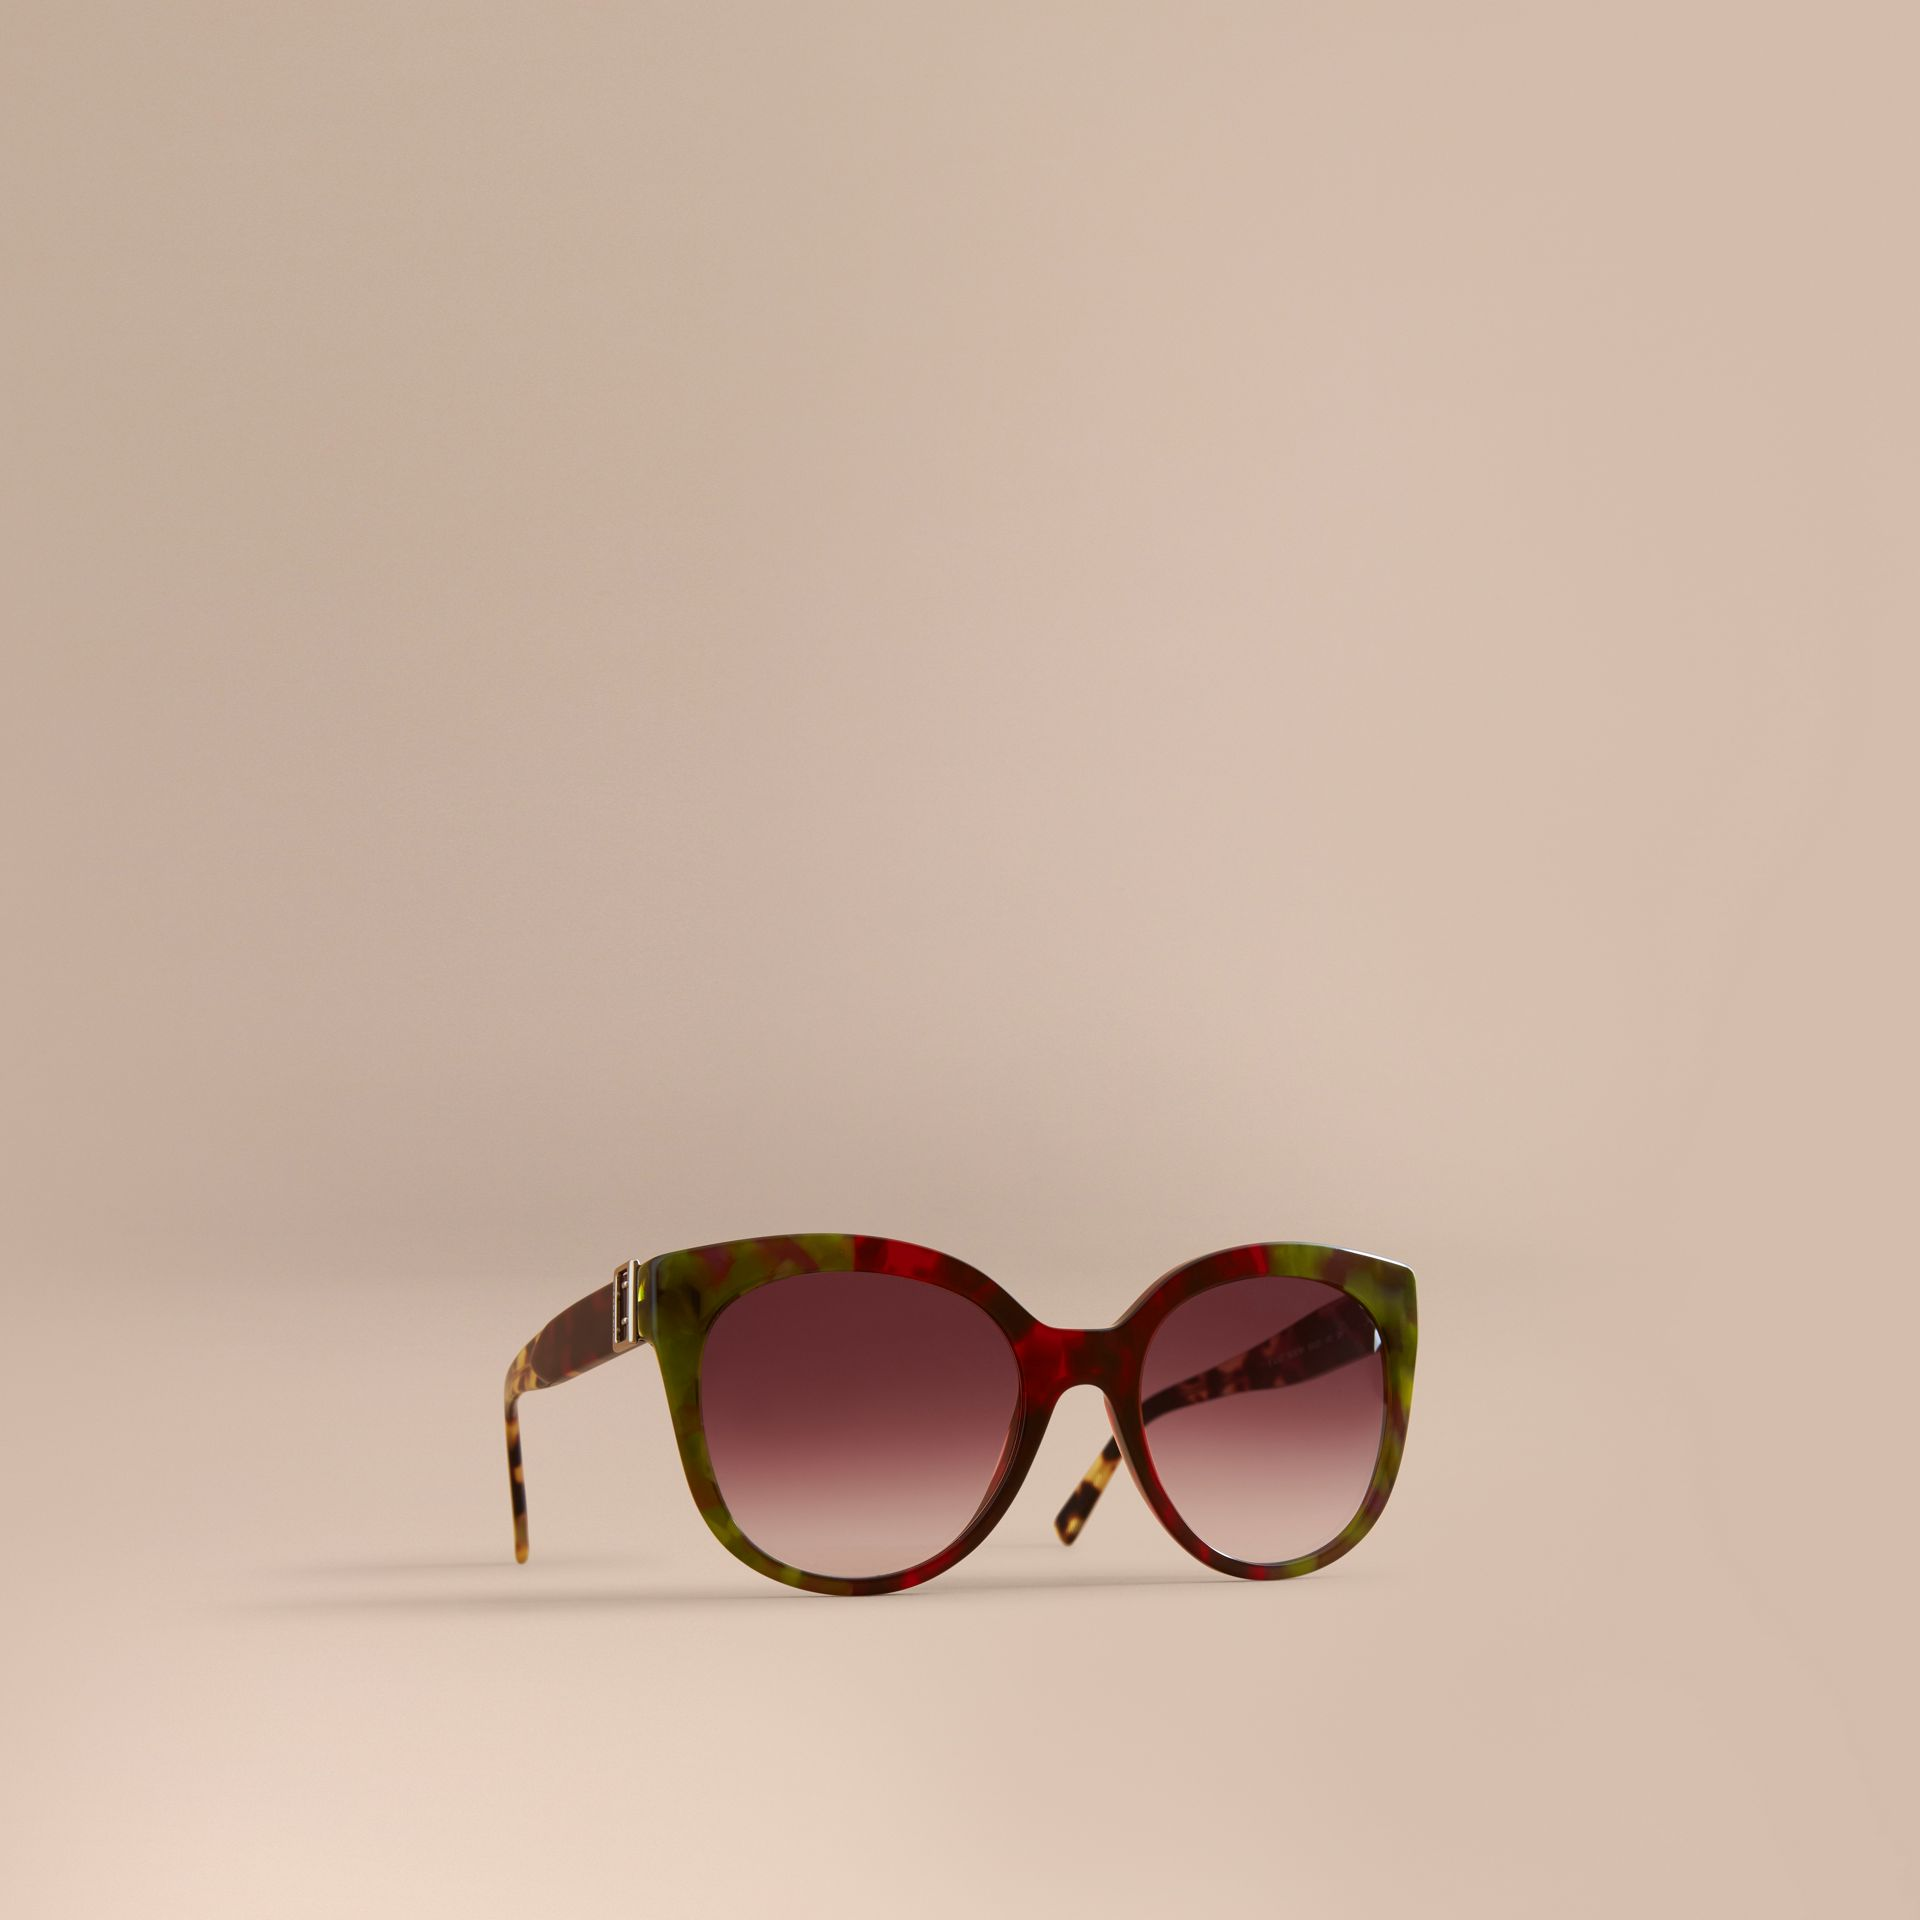 Buckle Detail Cat-eye Frame Sunglasses in Cardinal Red - Women | Burberry Australia - gallery image 0